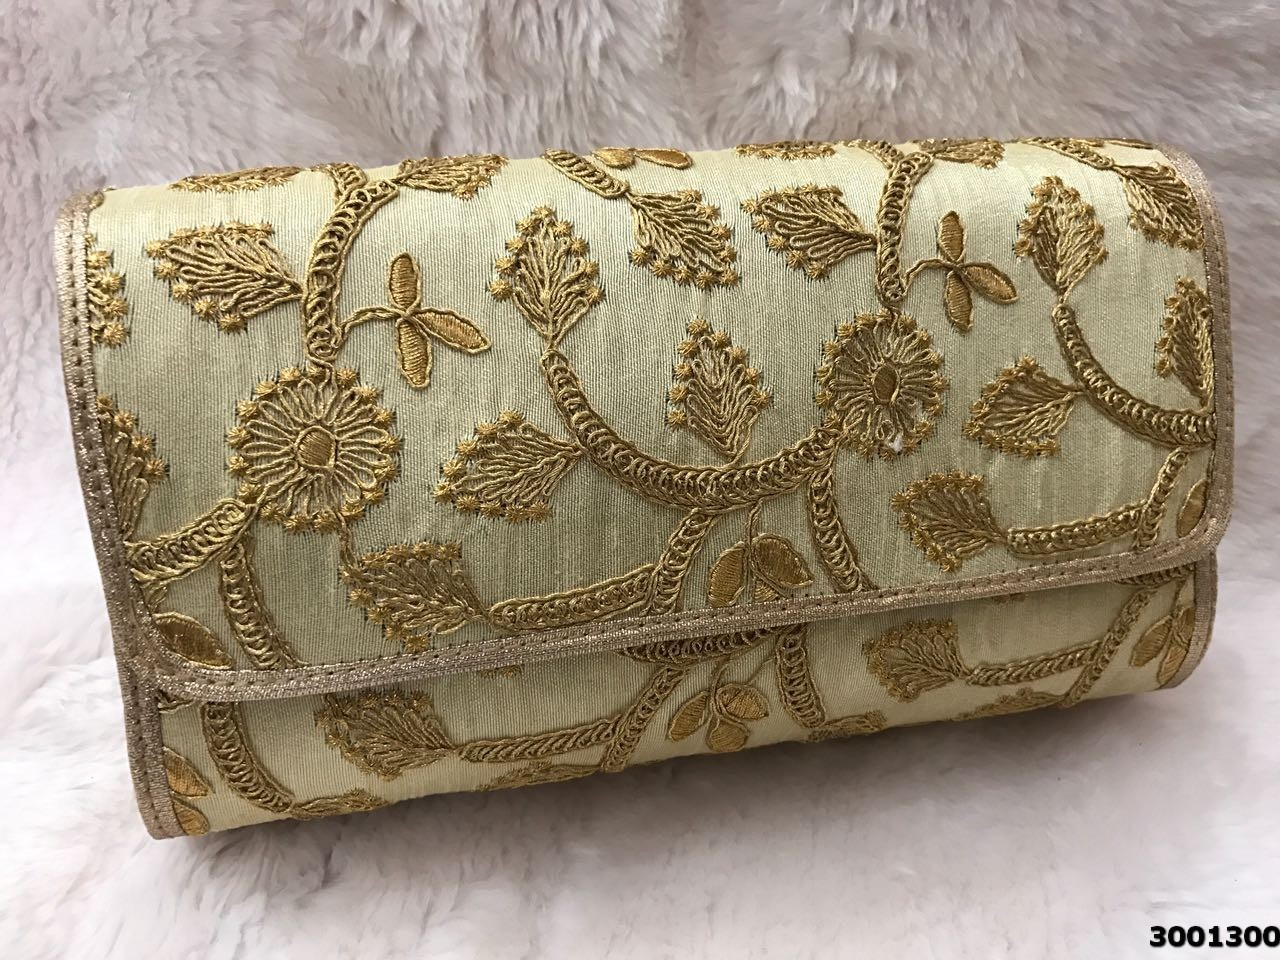 Beautiful Embroidered Ethnic Clutch Bag